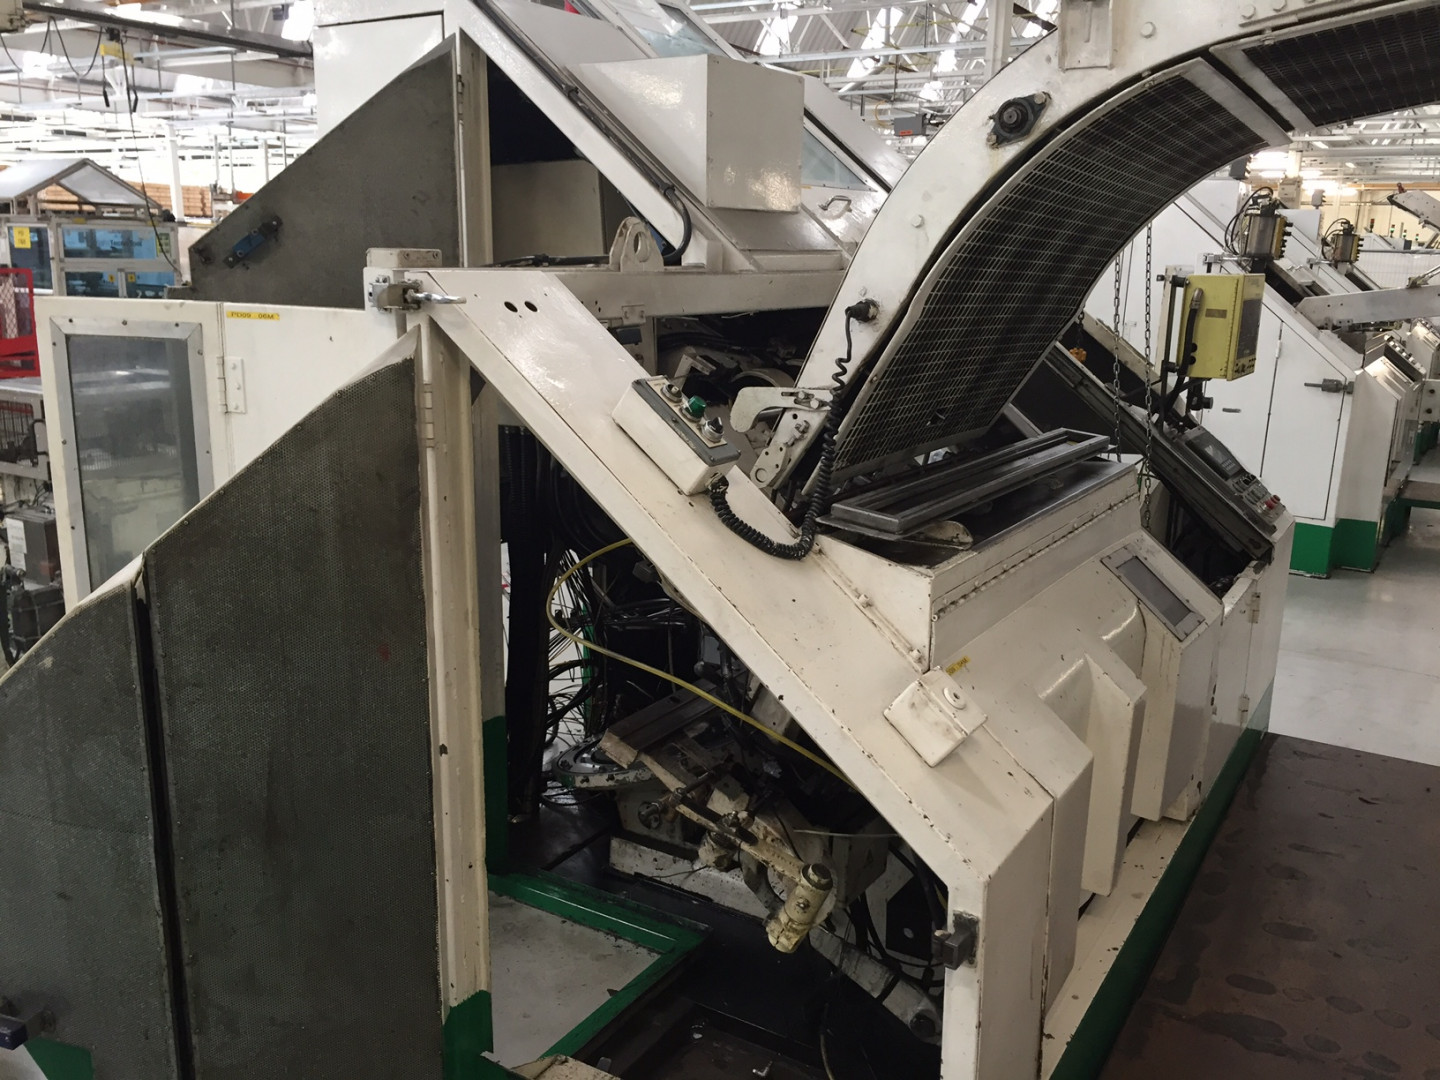 automatic transport from scroll shear to stripfeed press